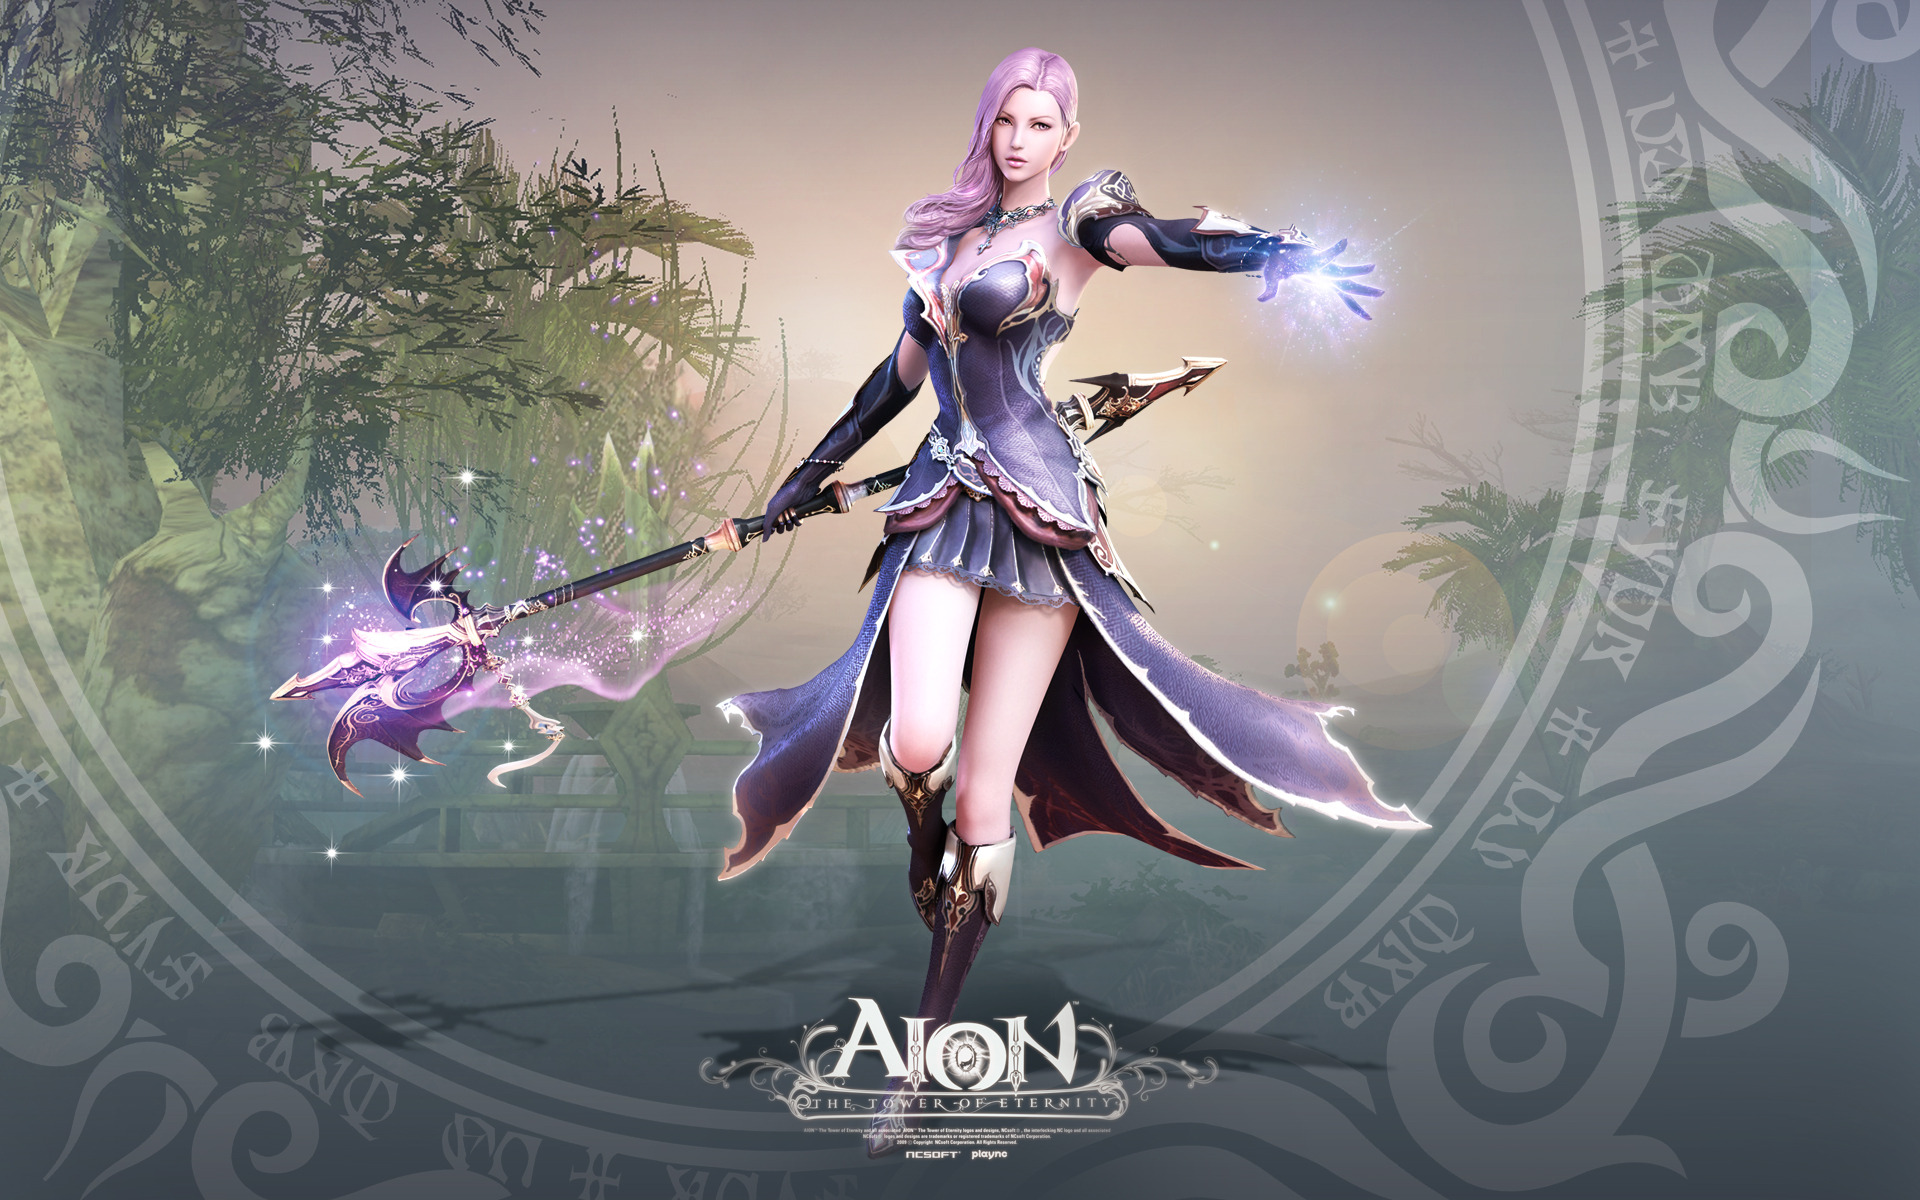 Download Aion Wallpaper 1920x1200 Wallpoper 311363 1920x1200